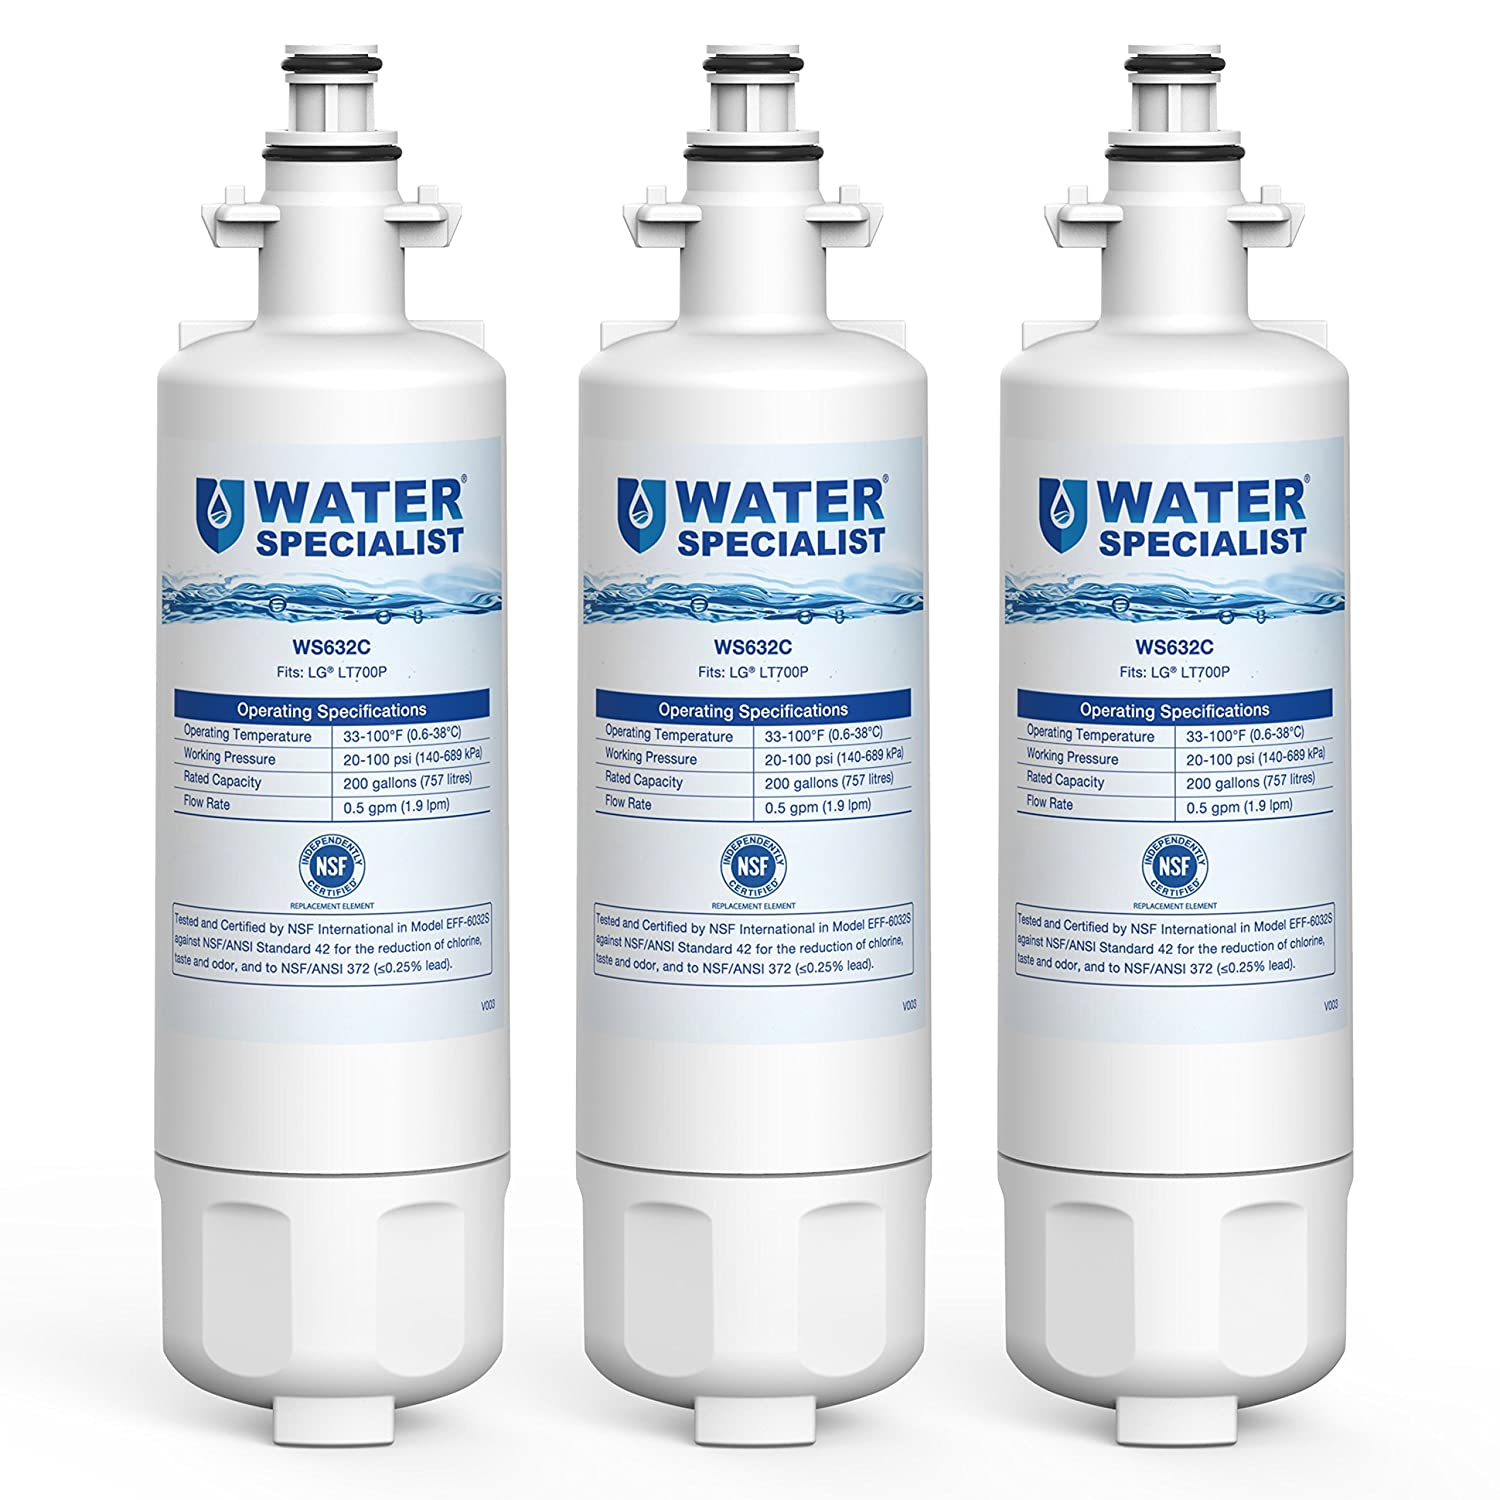 Waterspecialist ADQ36006101 Refrigerator Water Filter, Replacement for LG LT700P, Kenmore 9690, 46-9690, 469690, ADQ36006102, LT700PC, WSL-3, R-9690, LFXS30766S, LFXC24726D (Pack of 3)